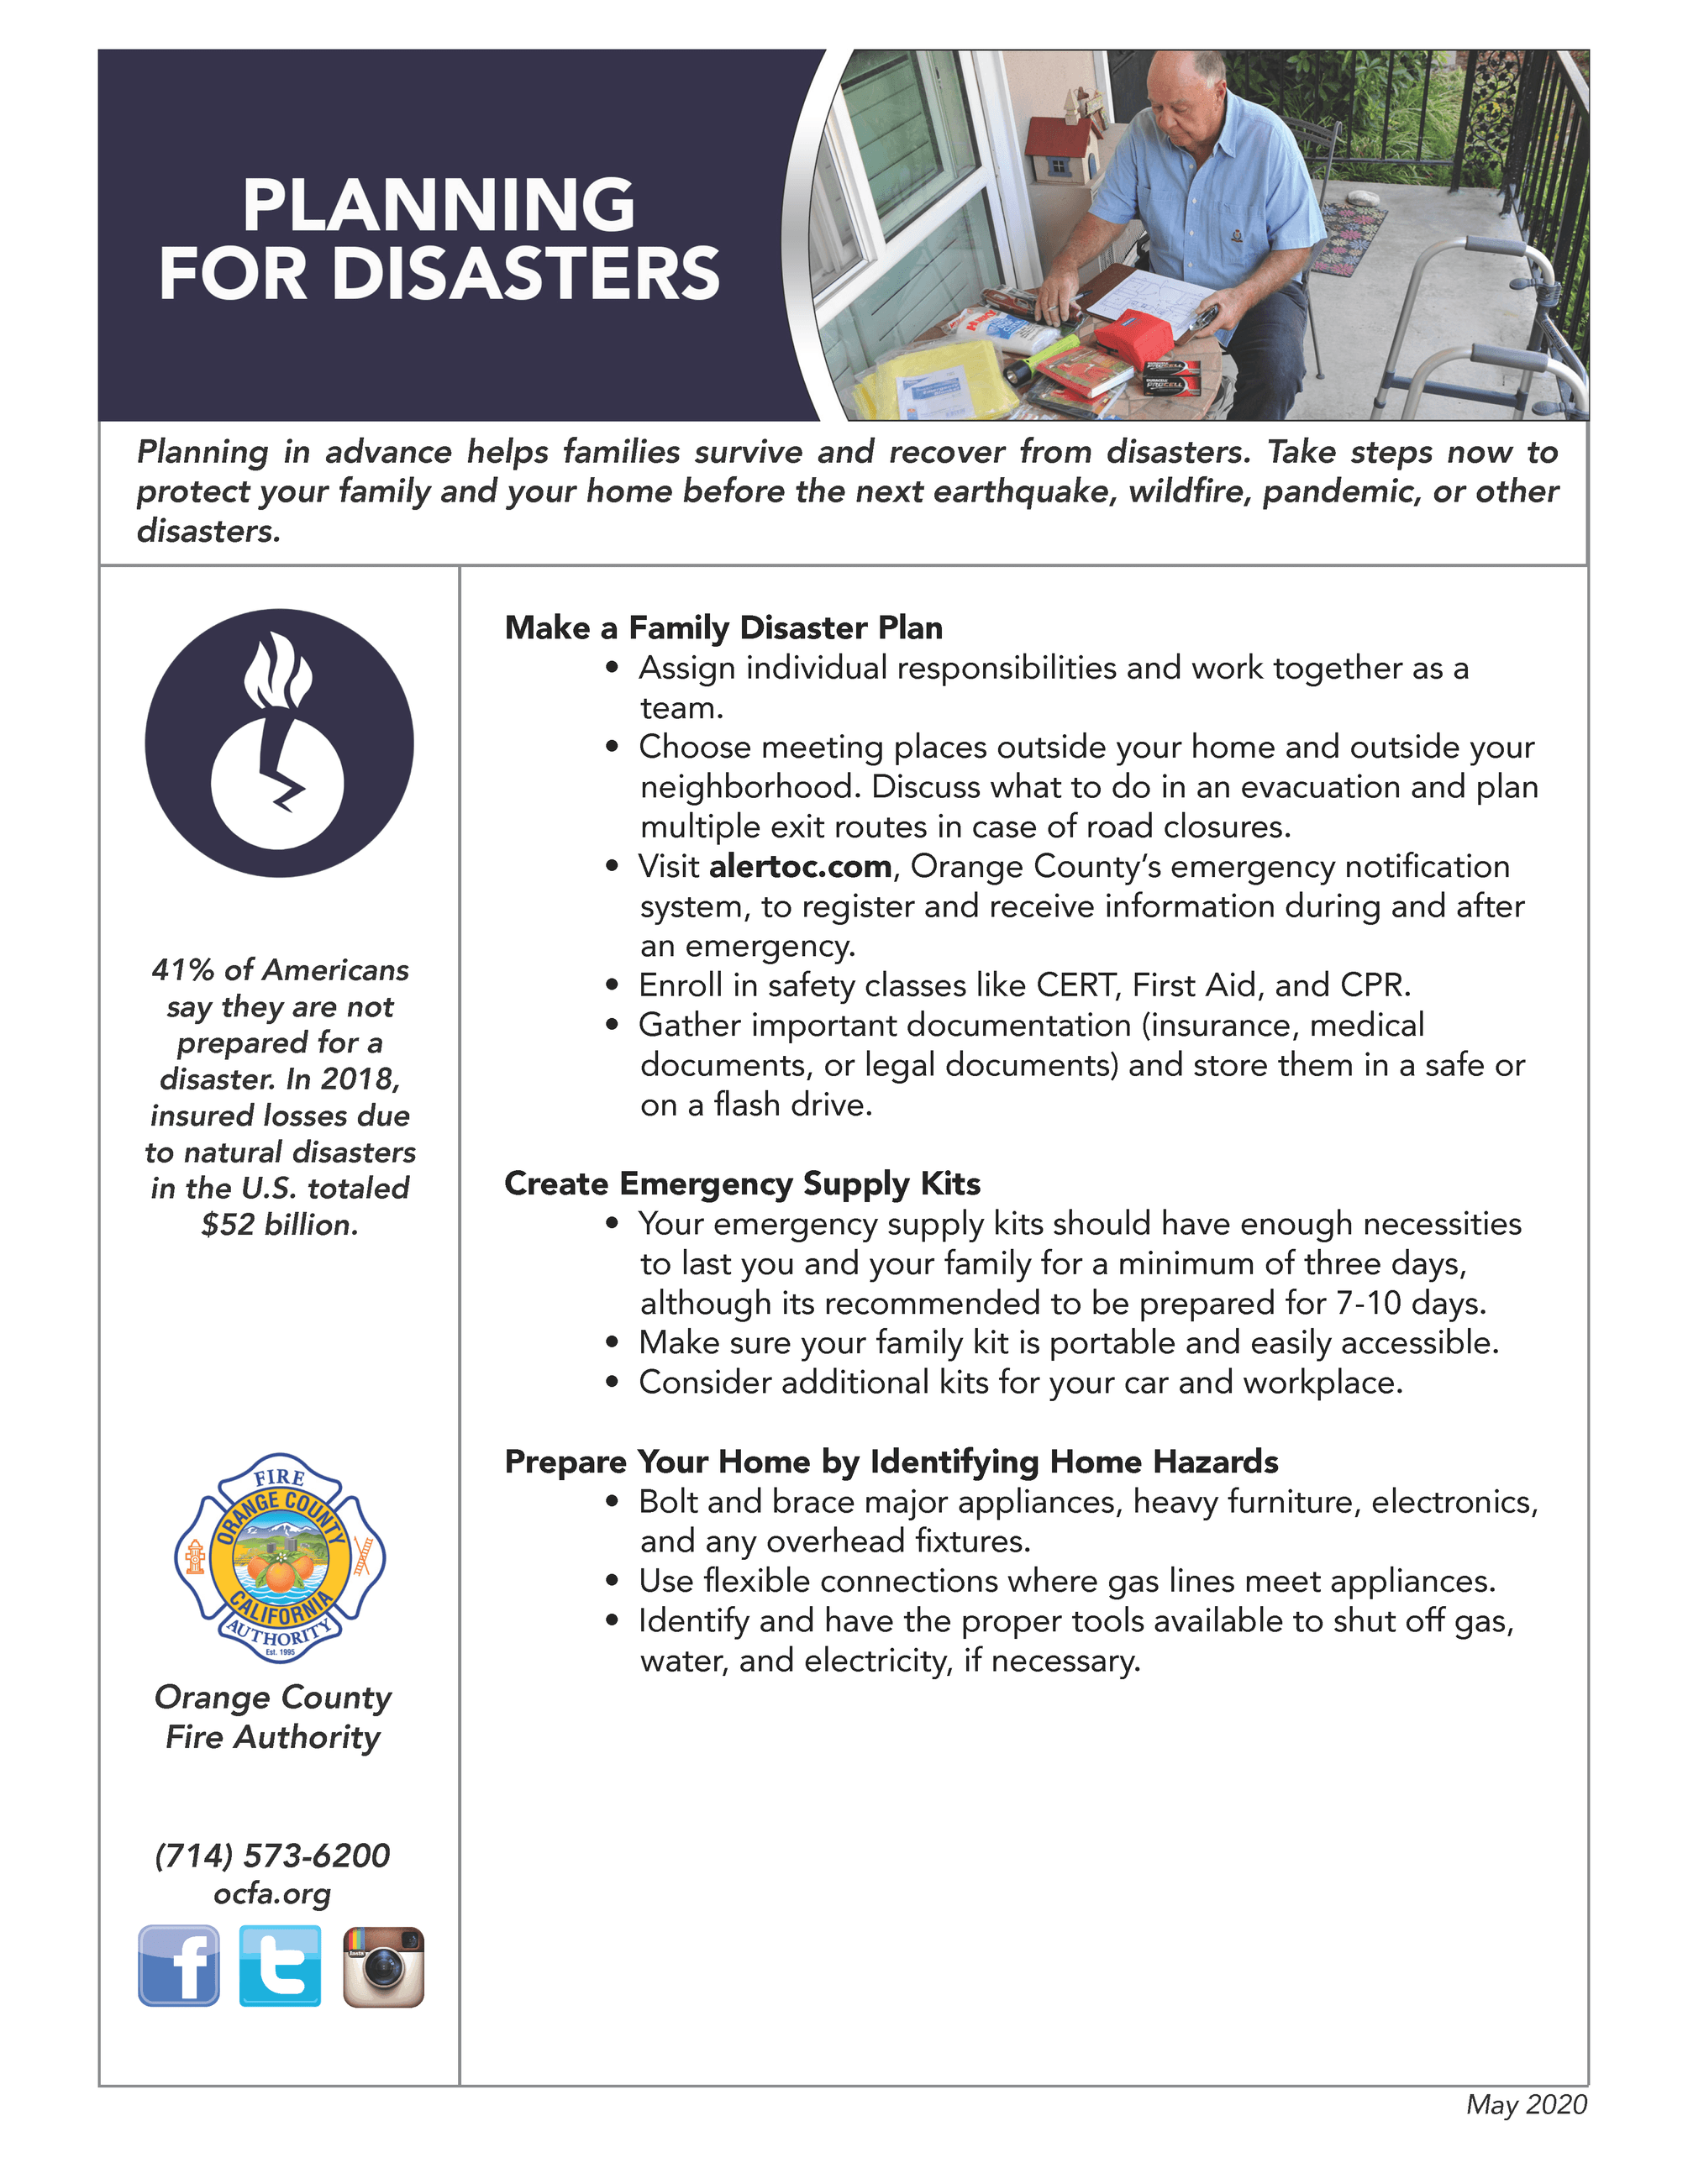 Planning for Disasters Flyer